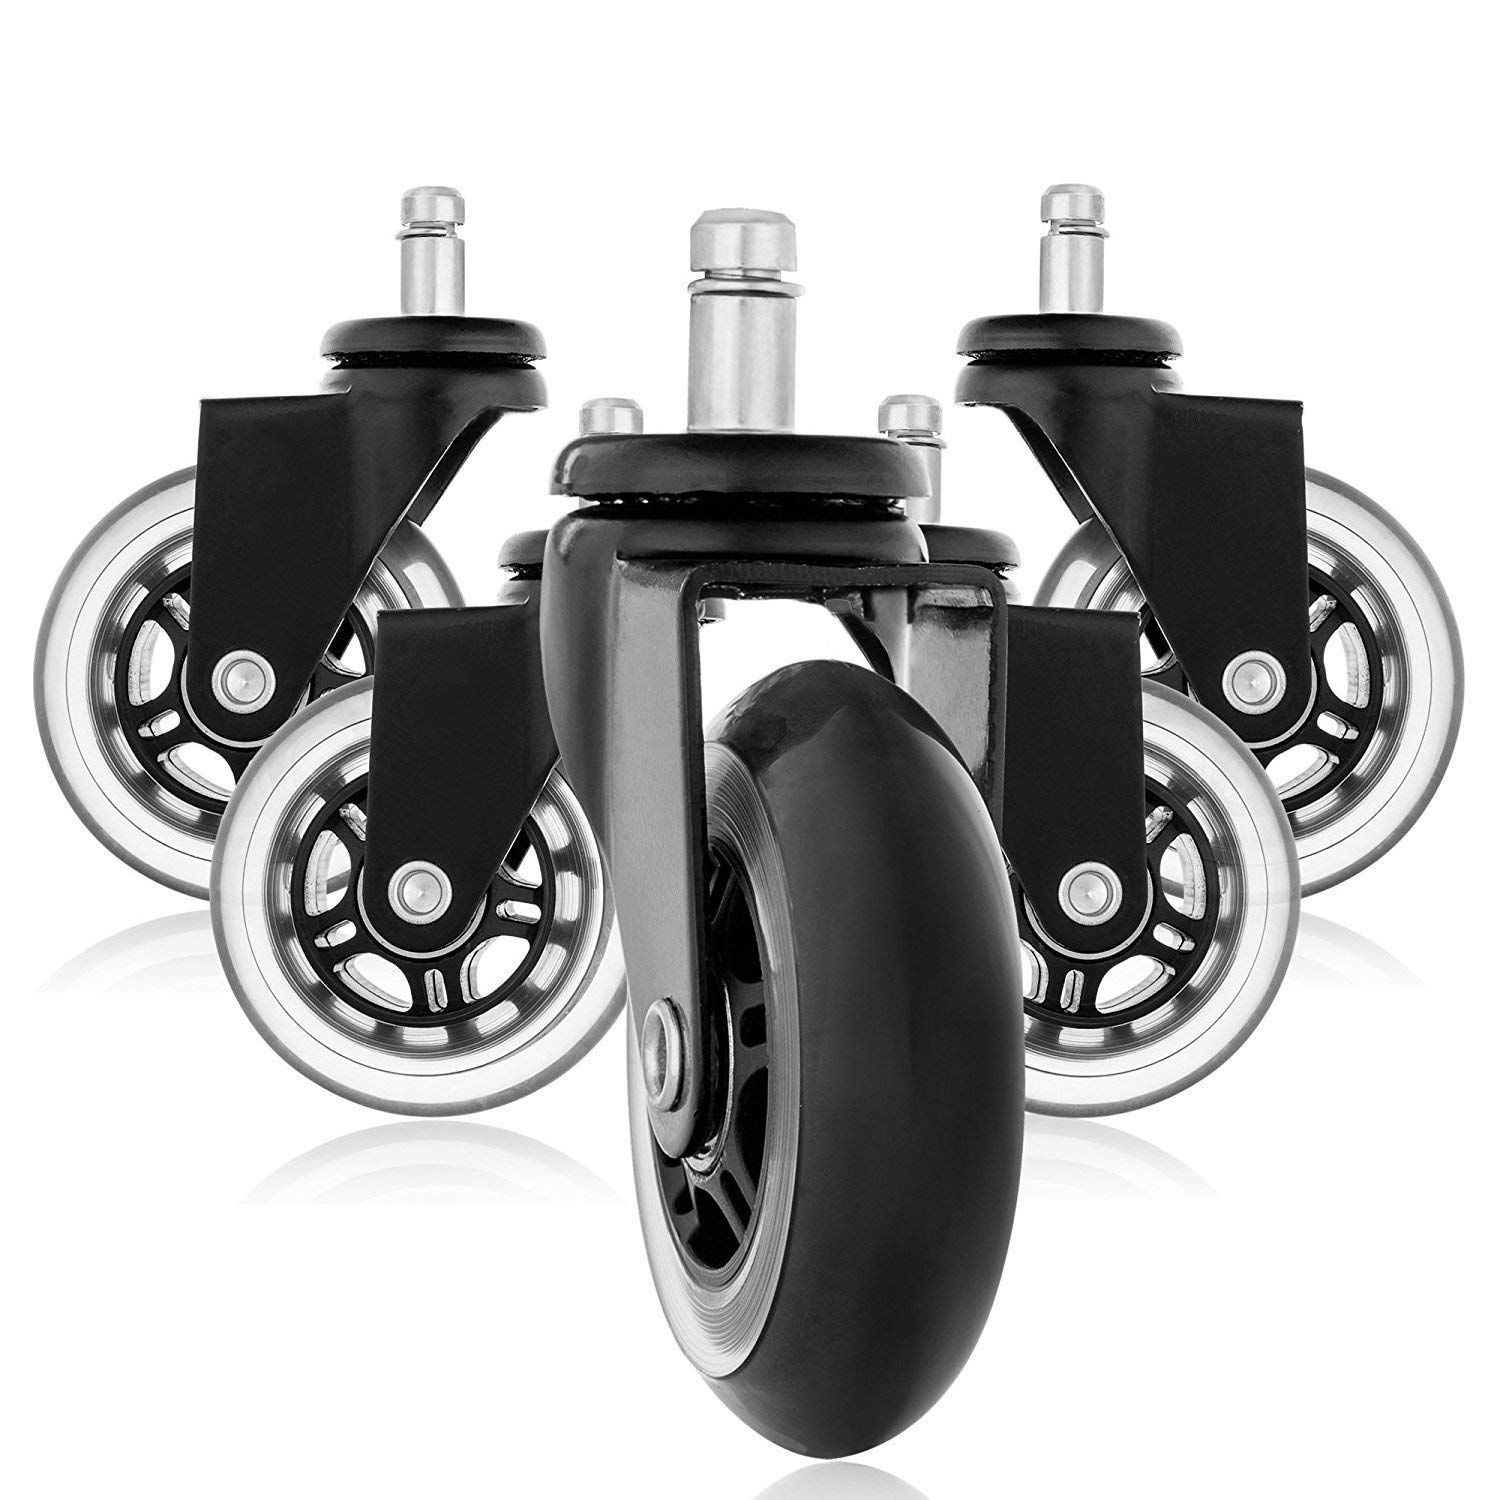 Replacement Wheels For Office Chairs Replacement Wheels Office Chair Caster Wheels For Your